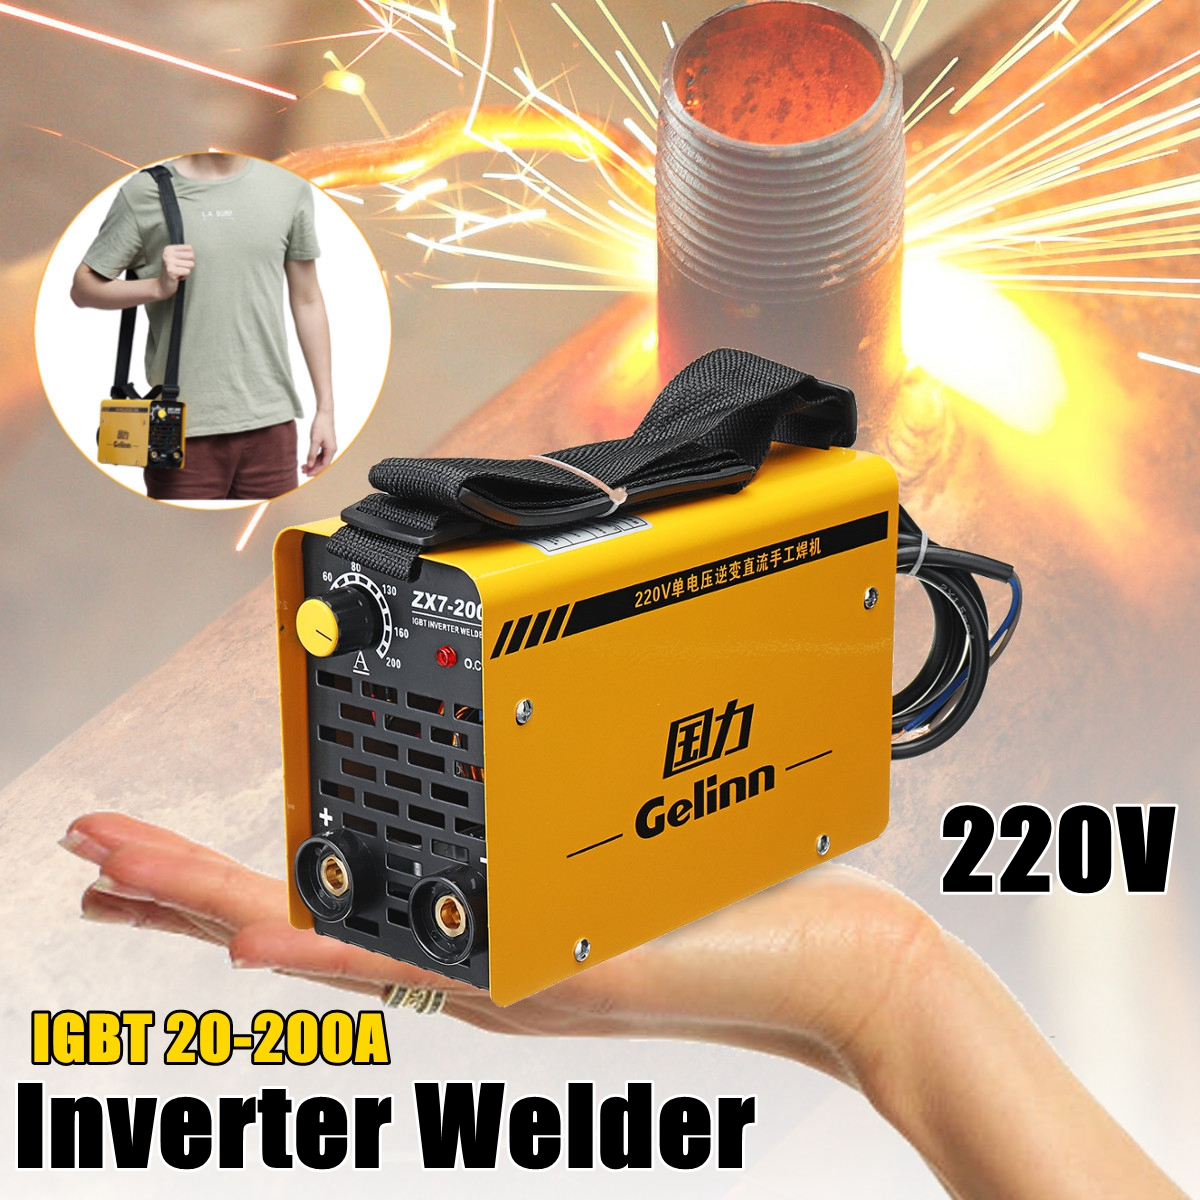 Welding 220V semiautomatic device: technical characteristics, reviews of manufacturers 19